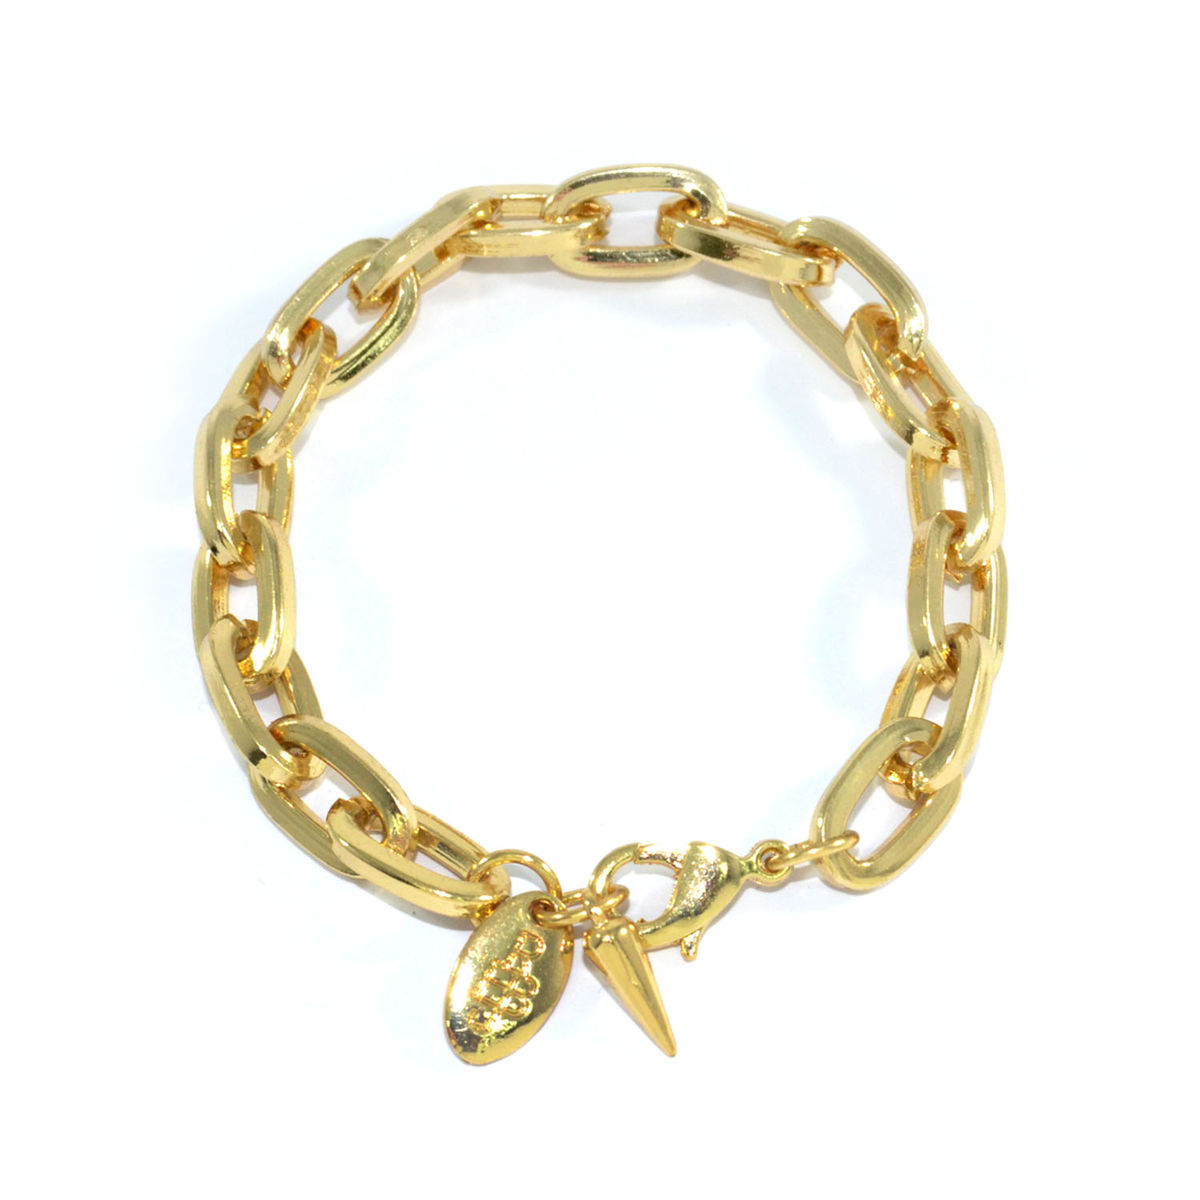 CHUNKY CHAIN WITH SPIKE BRACELET - Rings & Tings | Online fashion store | Shop the latest trends